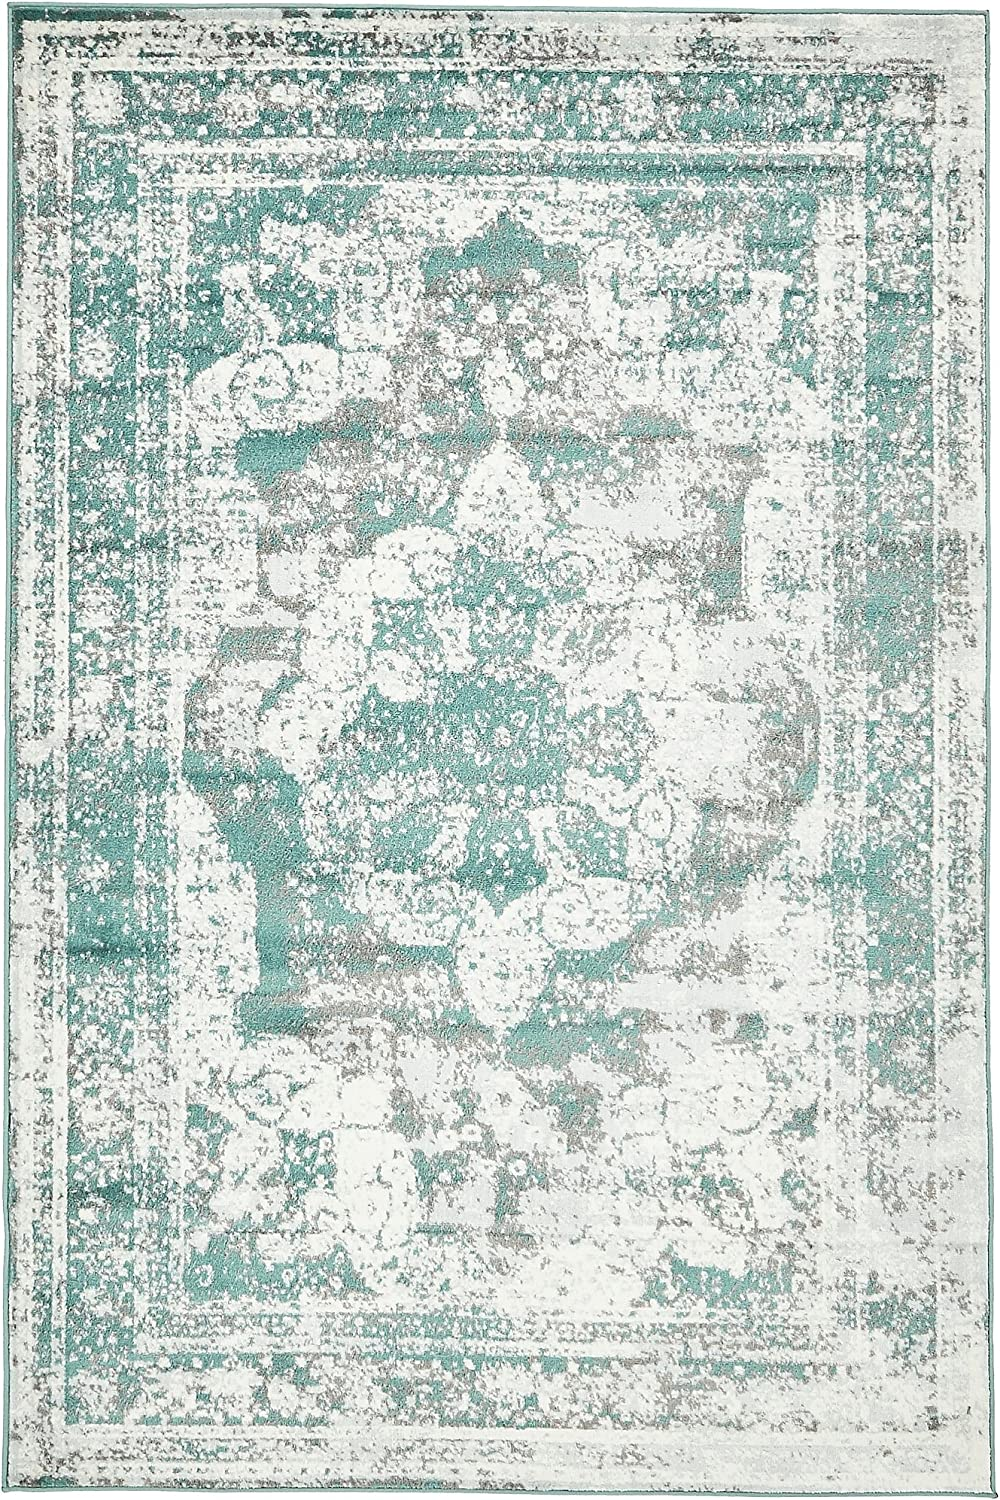 Unique Loom 3137827 Sofia Collection Traditional Vintage Beige Area Rug, 5' x 8' Rectangle, Turquoise